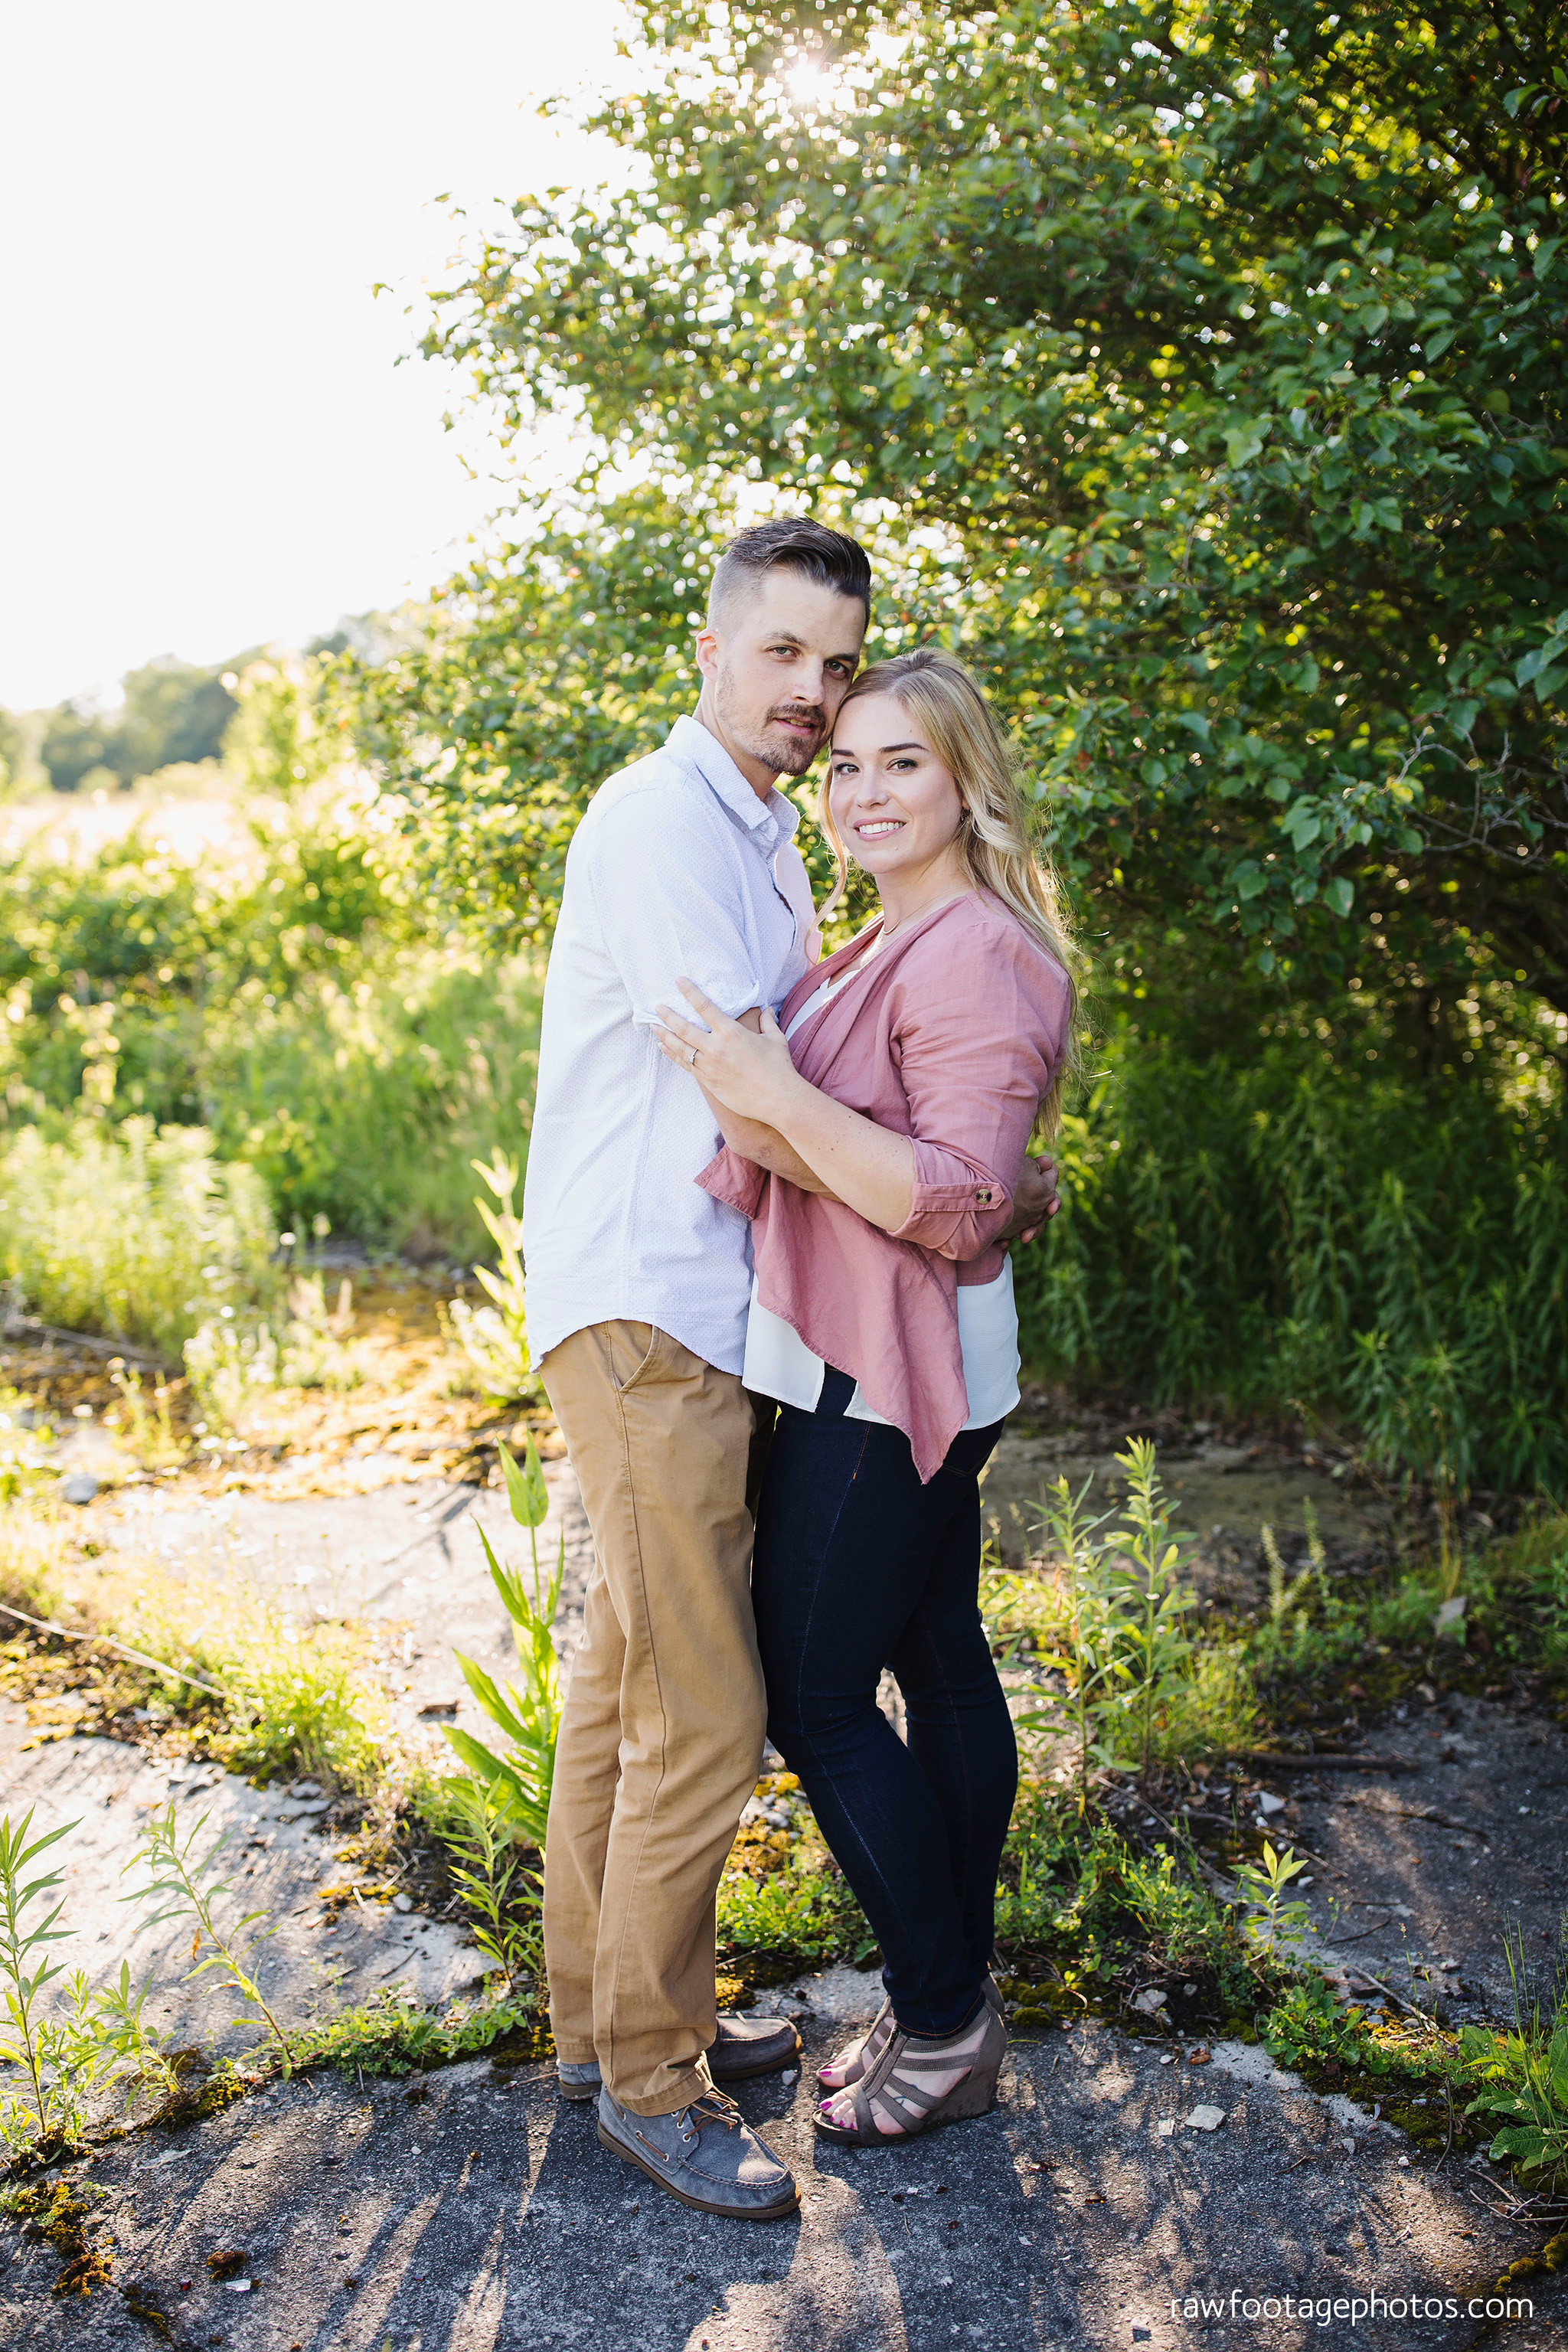 london_ontario_wedding_photographer-raw_footage_photography-mentoring-workshop-golden_hour-engagement_session004.jpg